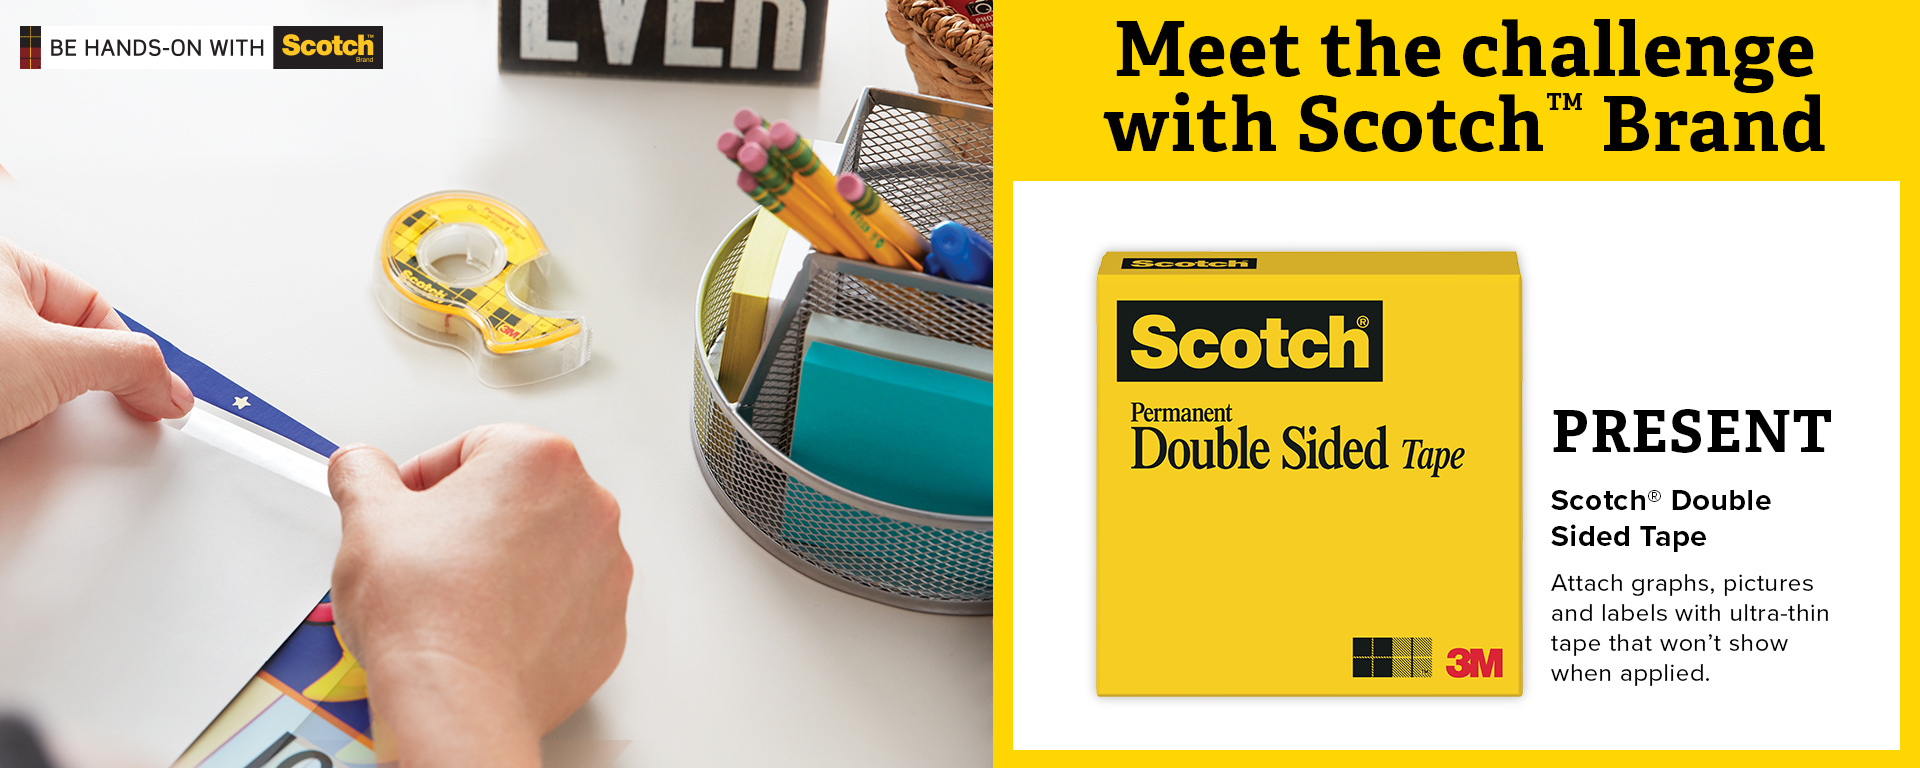 Scotch® Double Sided Tape: Attach graphs, pictures and labels with ultra-thin tape that won't show